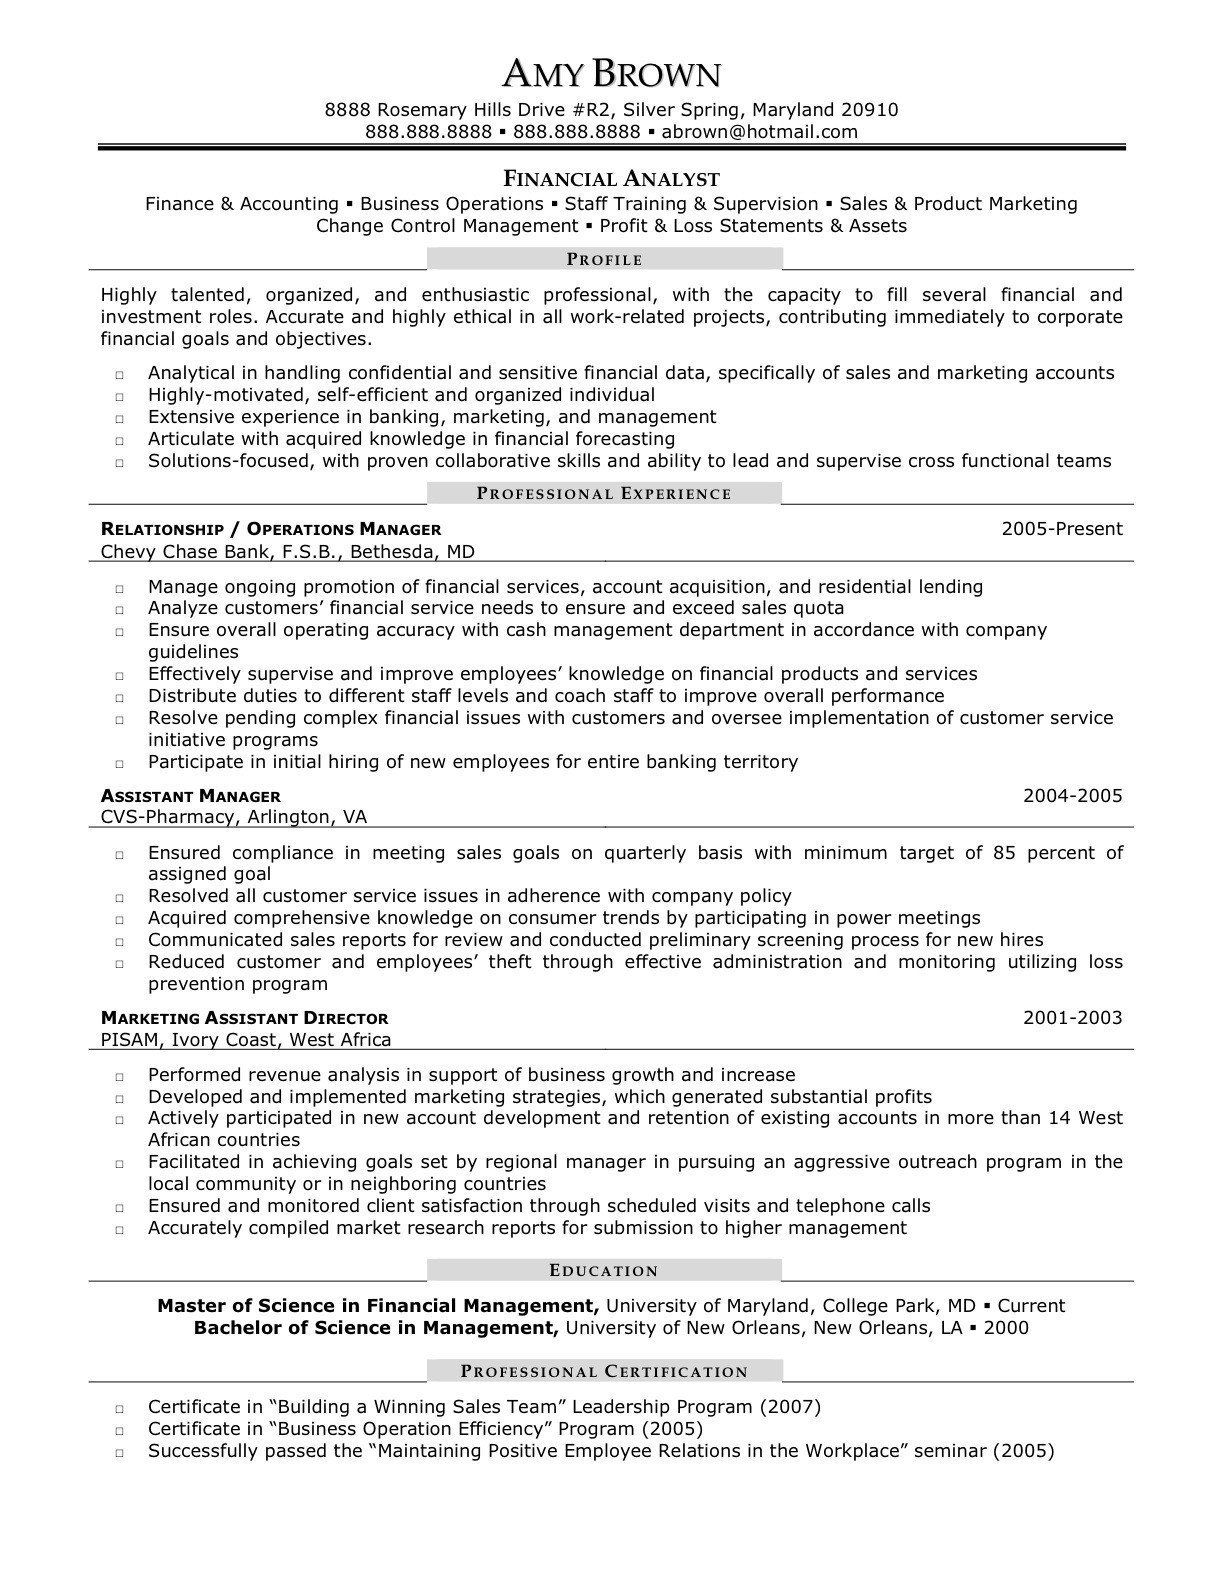 Business Analyst Resume Sample Lovely Credit Analyst Resume